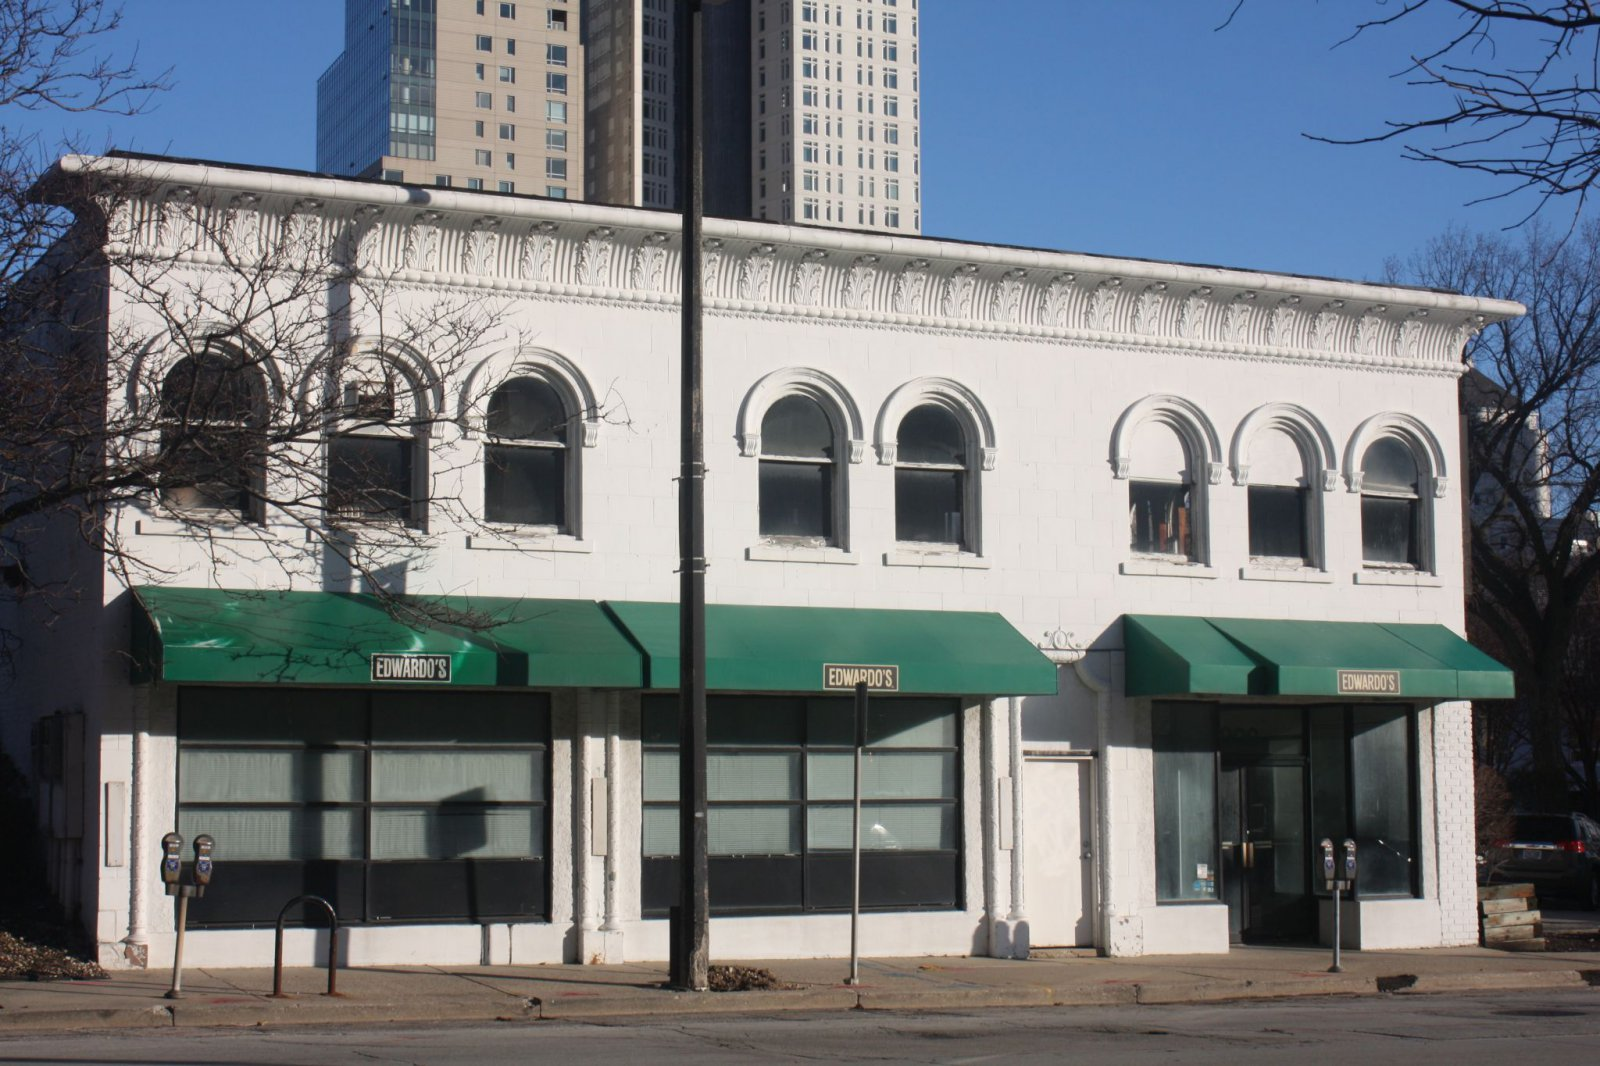 Edwardo\'s vacated this building years ago. A good sport for a new pizza place